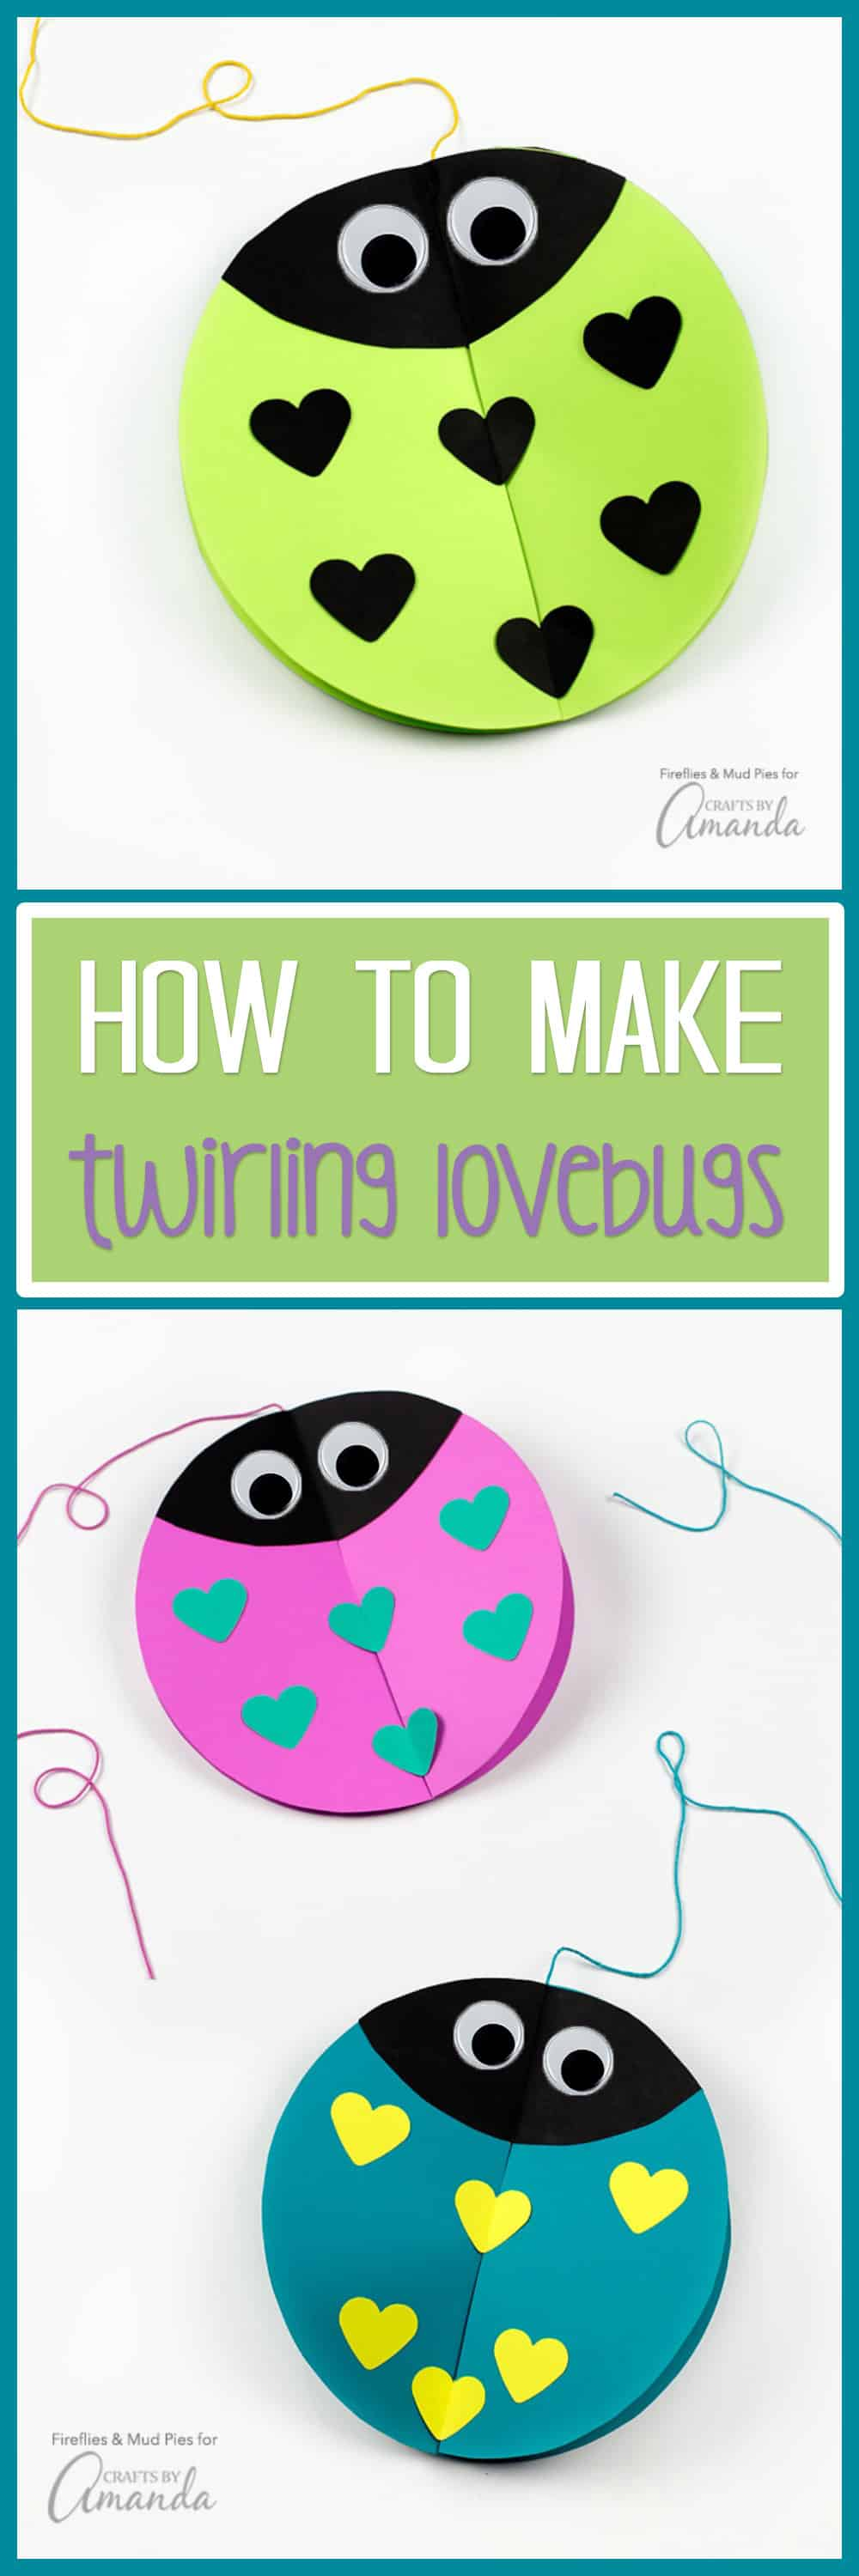 Crafters of all ages will enjoy making Twirling Lovebugs for Valentine's Day. They are a fun, decoration that will bring joy and smiles to all who see them!